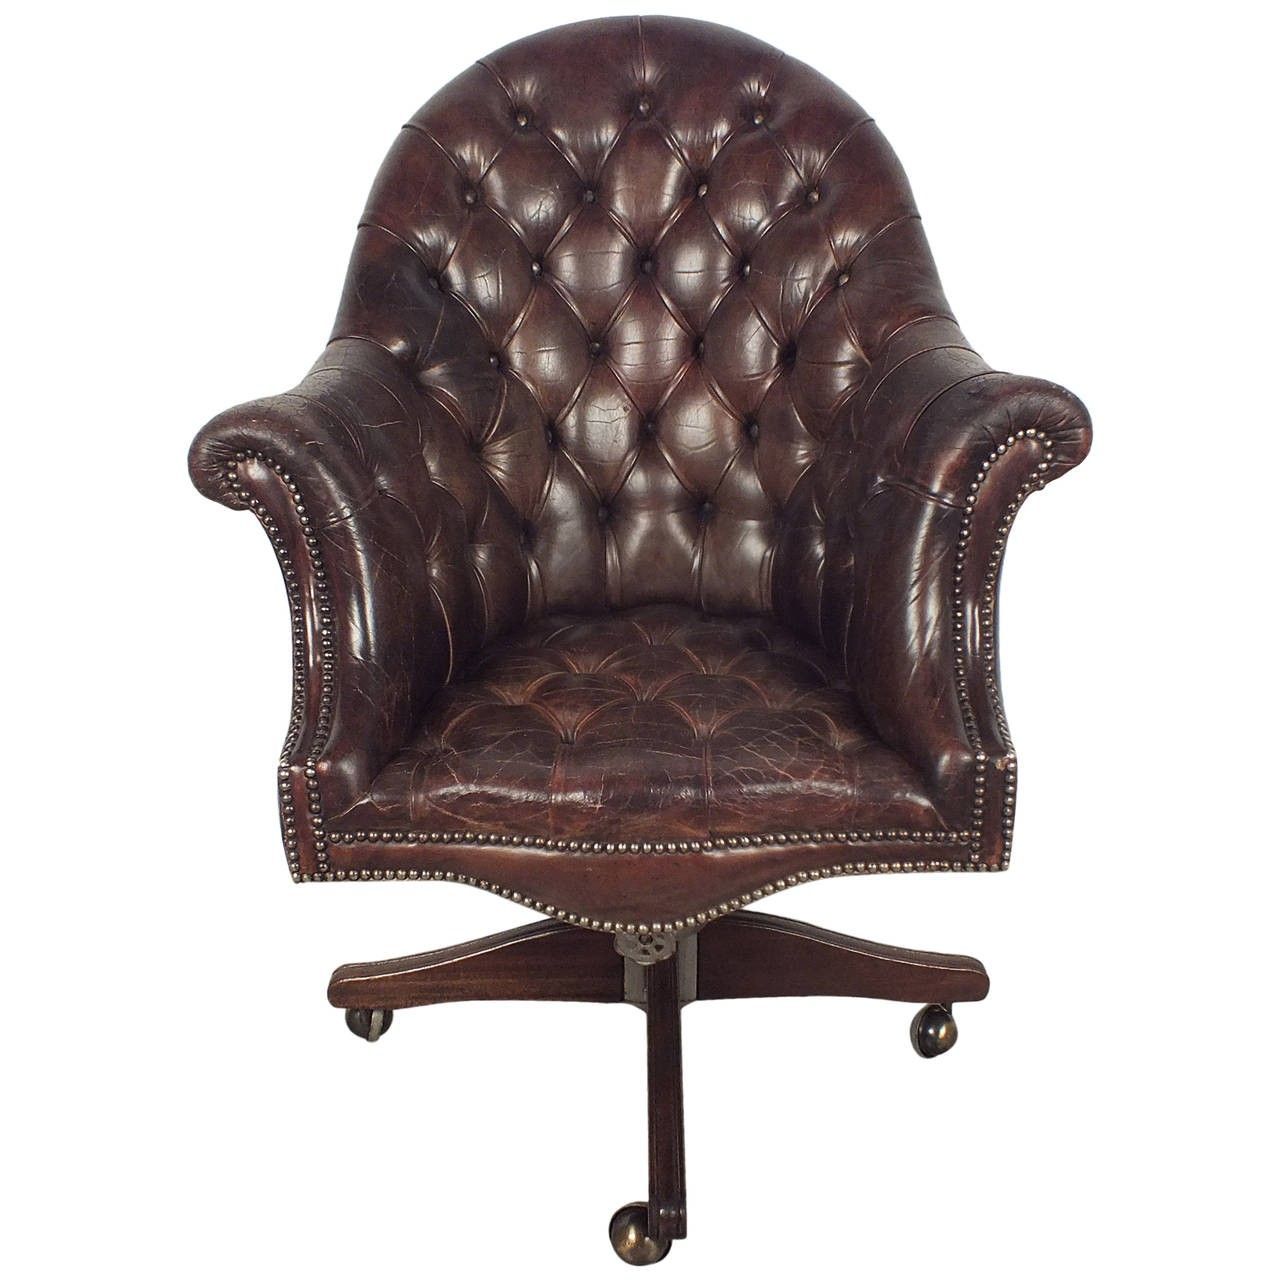 This is a classy 1950s English Chesterfield tufted brown